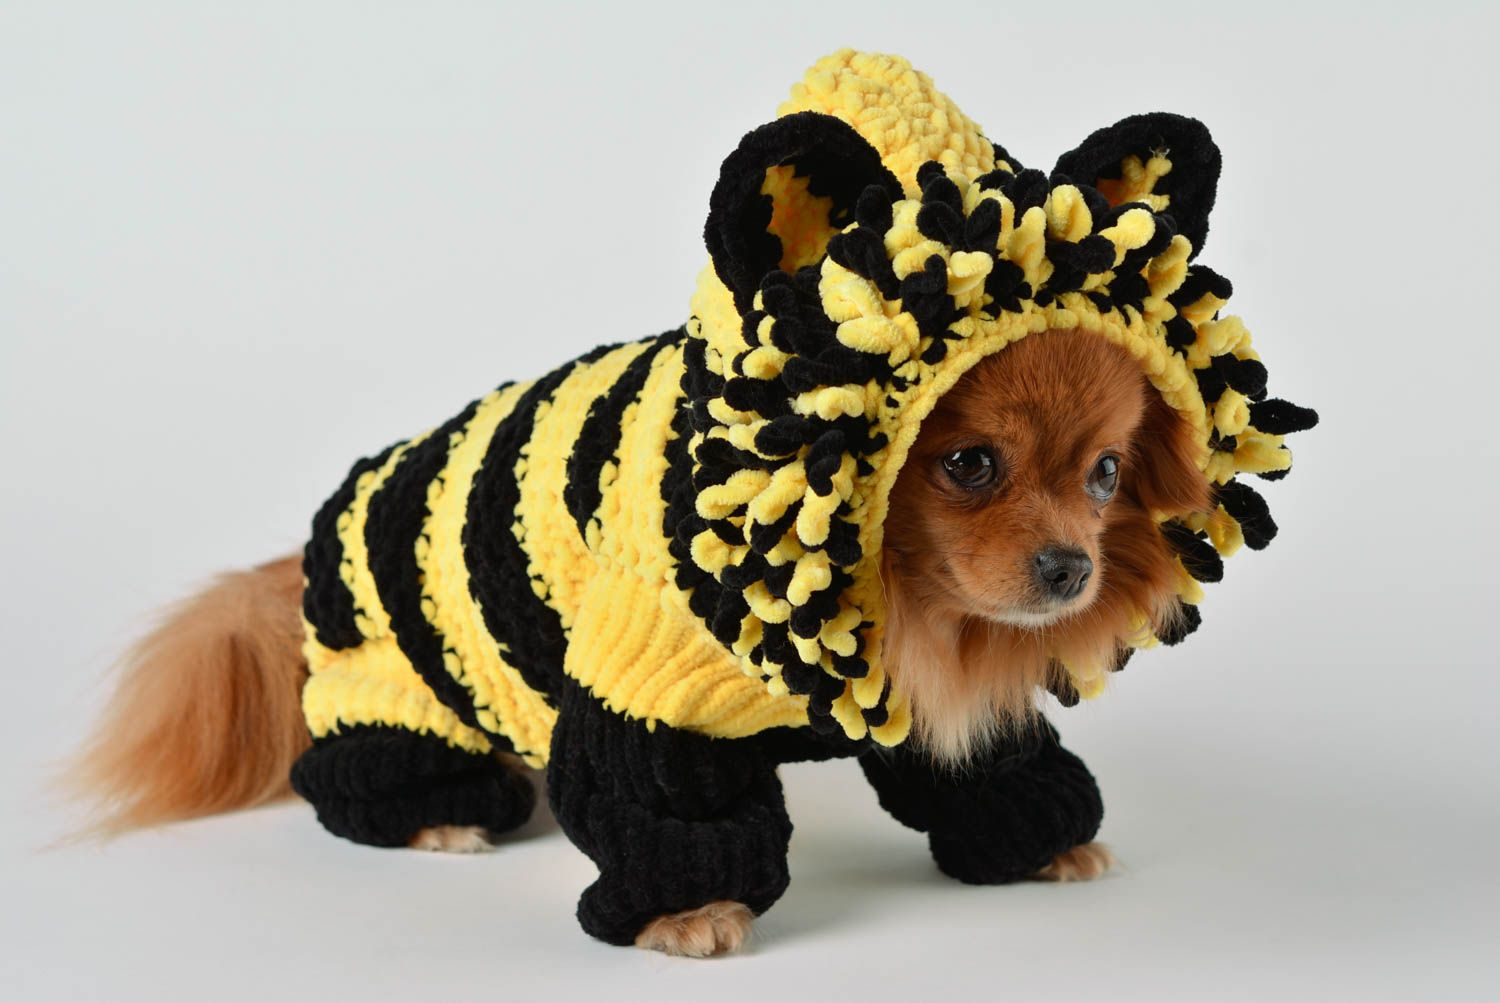 Handmade knitted suit for dogs bright designer clothes for pets cute accessory photo 1